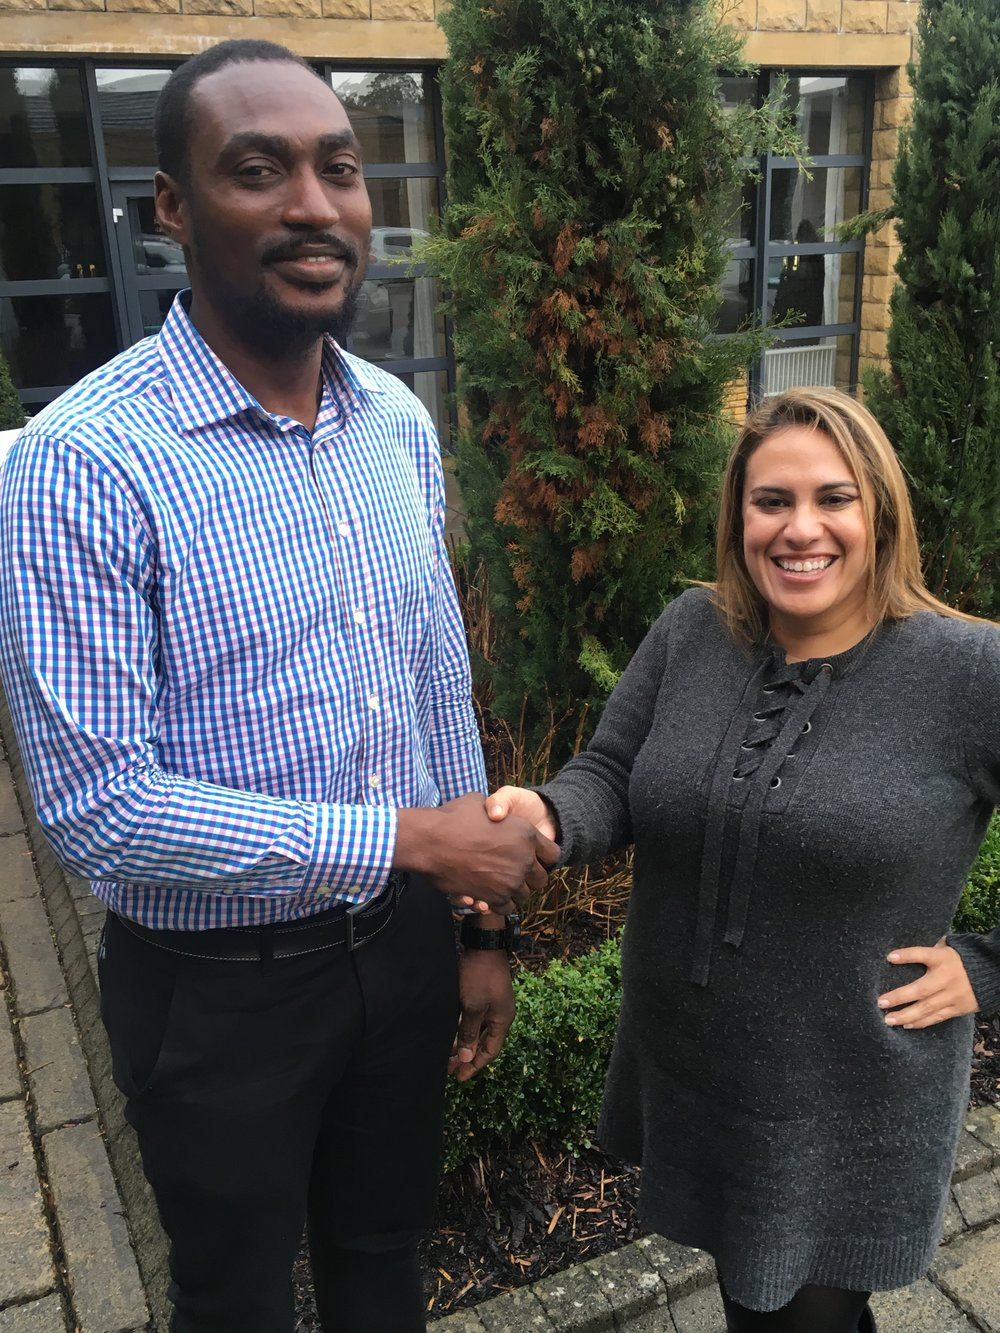 CEO Cori Calvert welcomes Ekene Gbanite to the team.